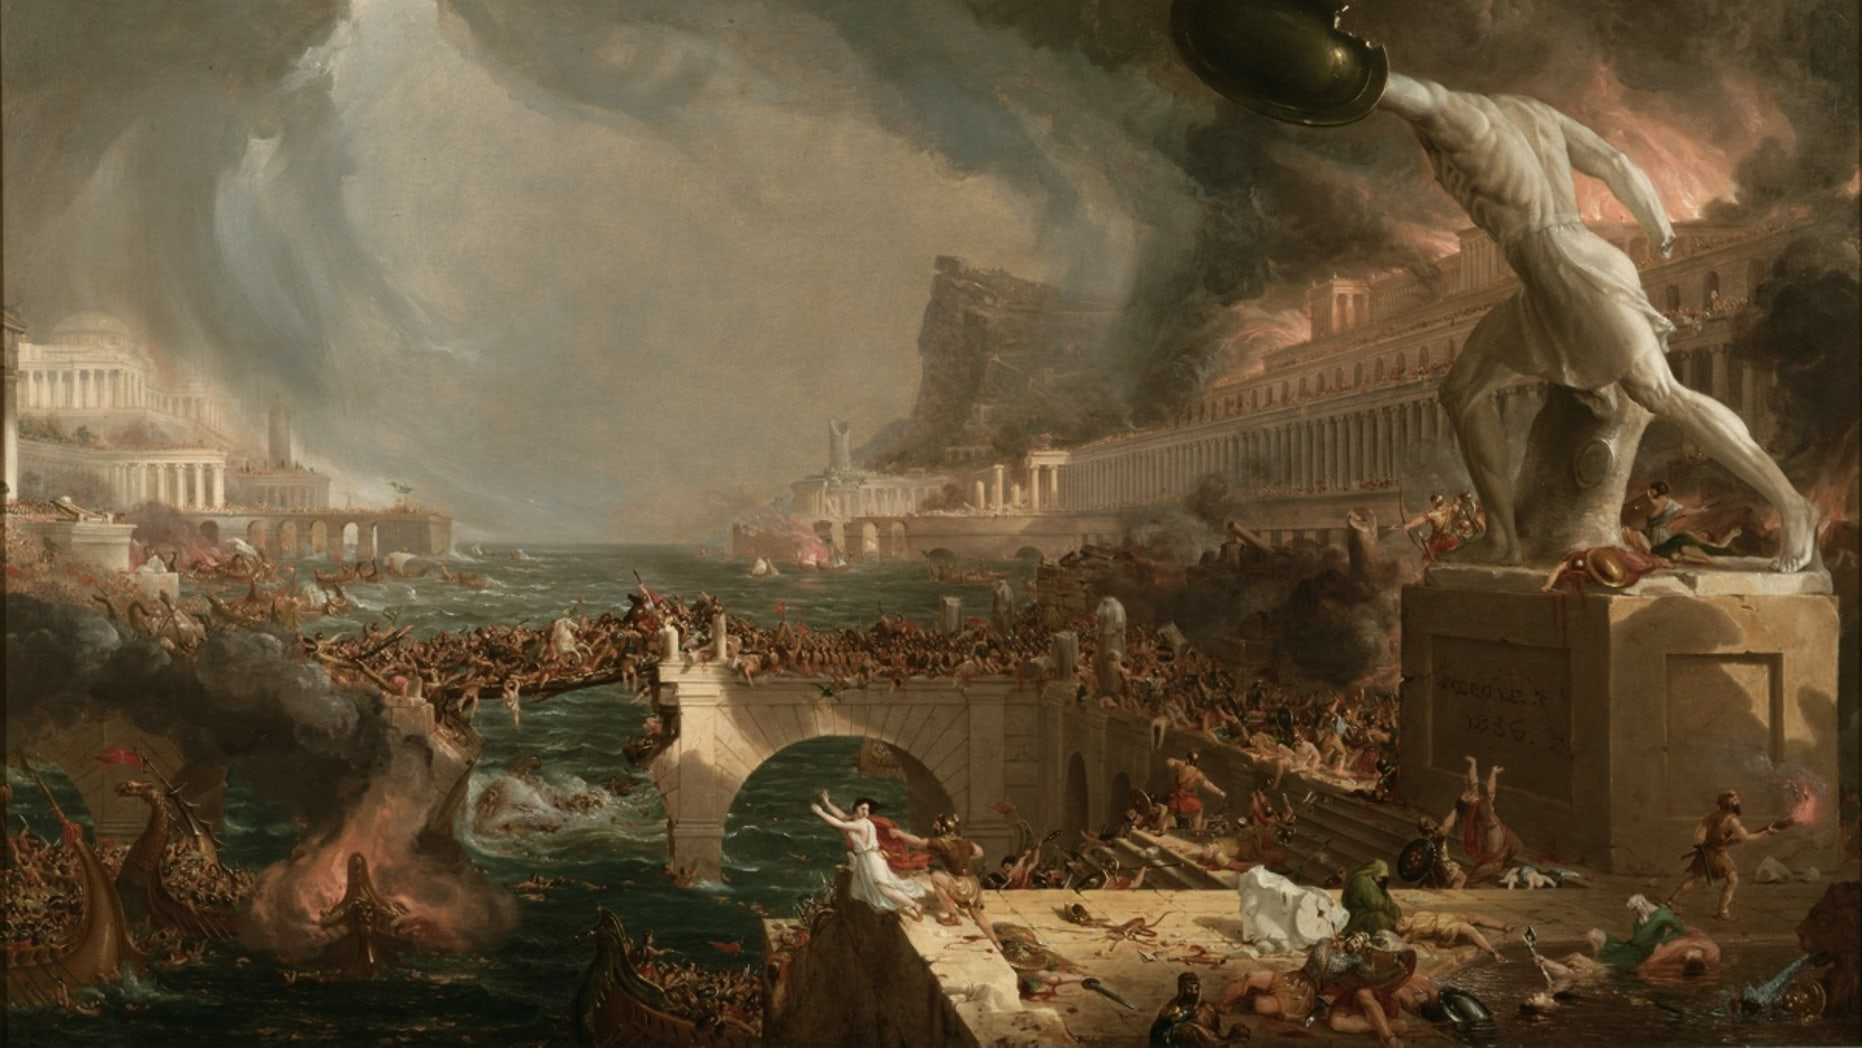 The fall of the Roman Empire may have been a partial result of the decade of famine and plague that began in A.D. 536, the authors of a new study say.